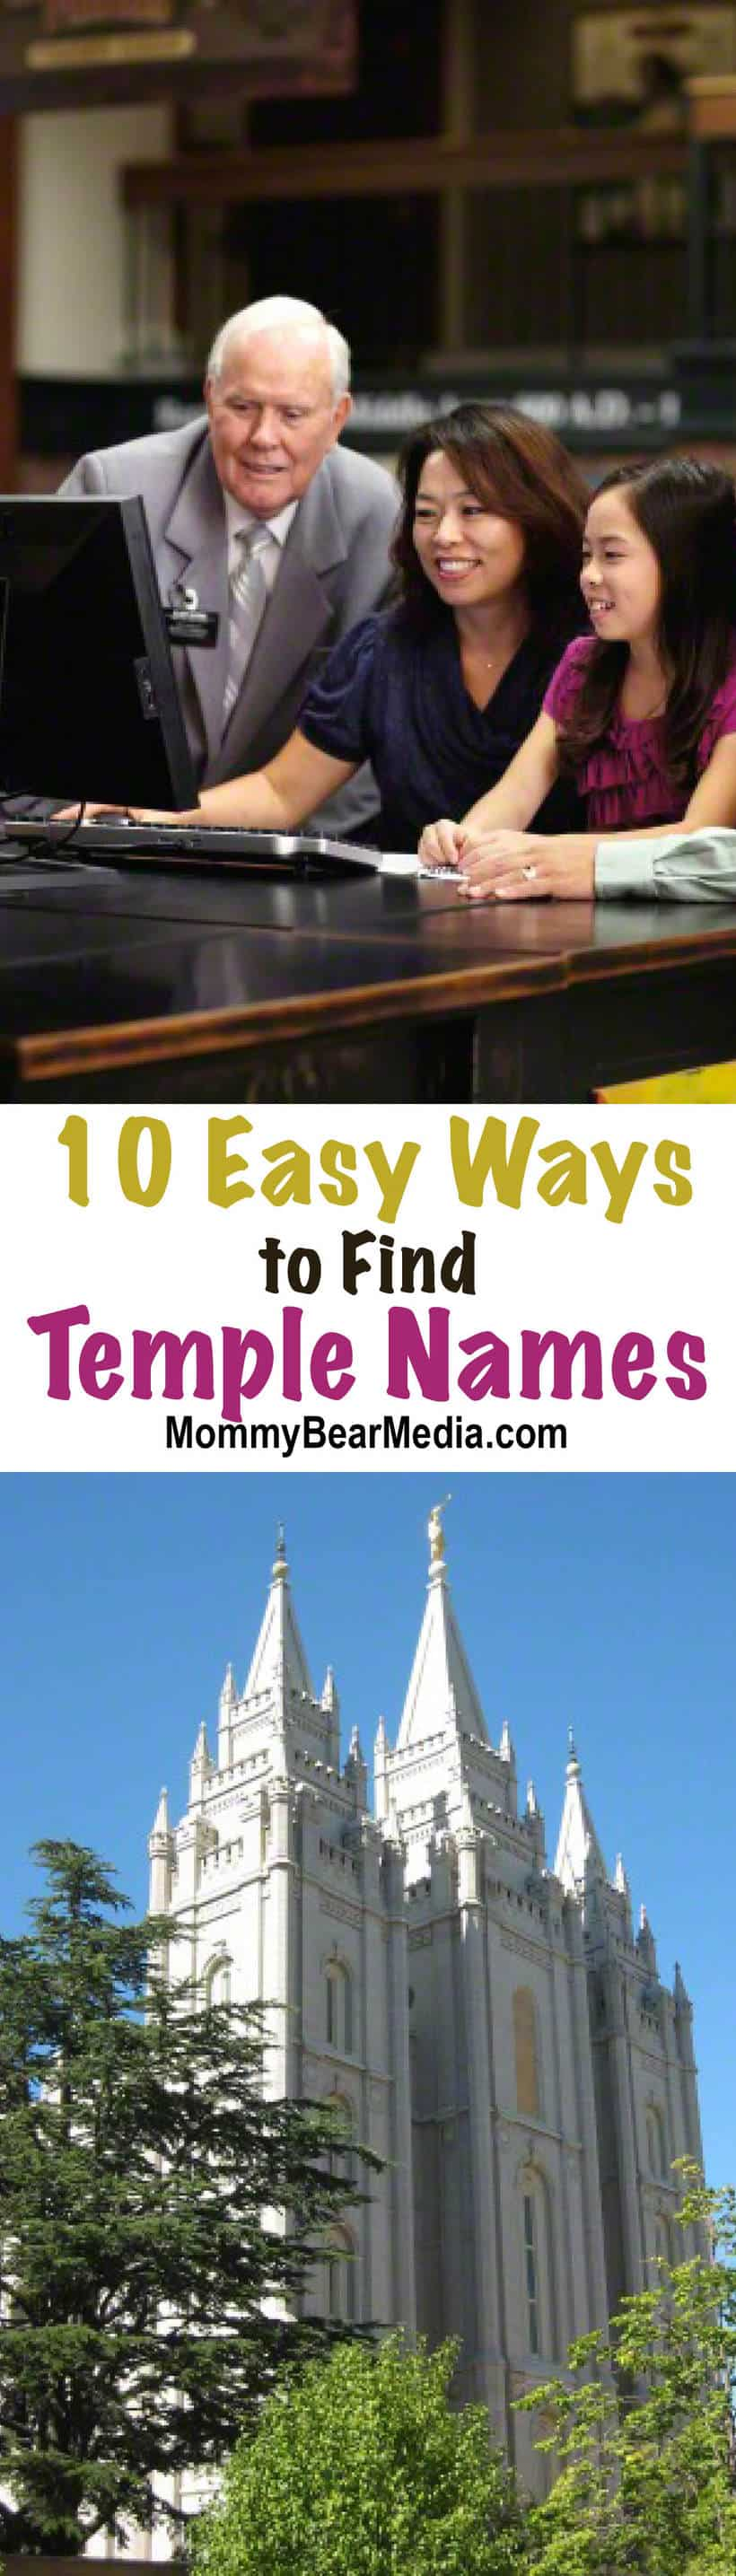 This article on 10 easy ways to find temple names lists easy things you can do to get started with family history and find names a lot easier than you may think!